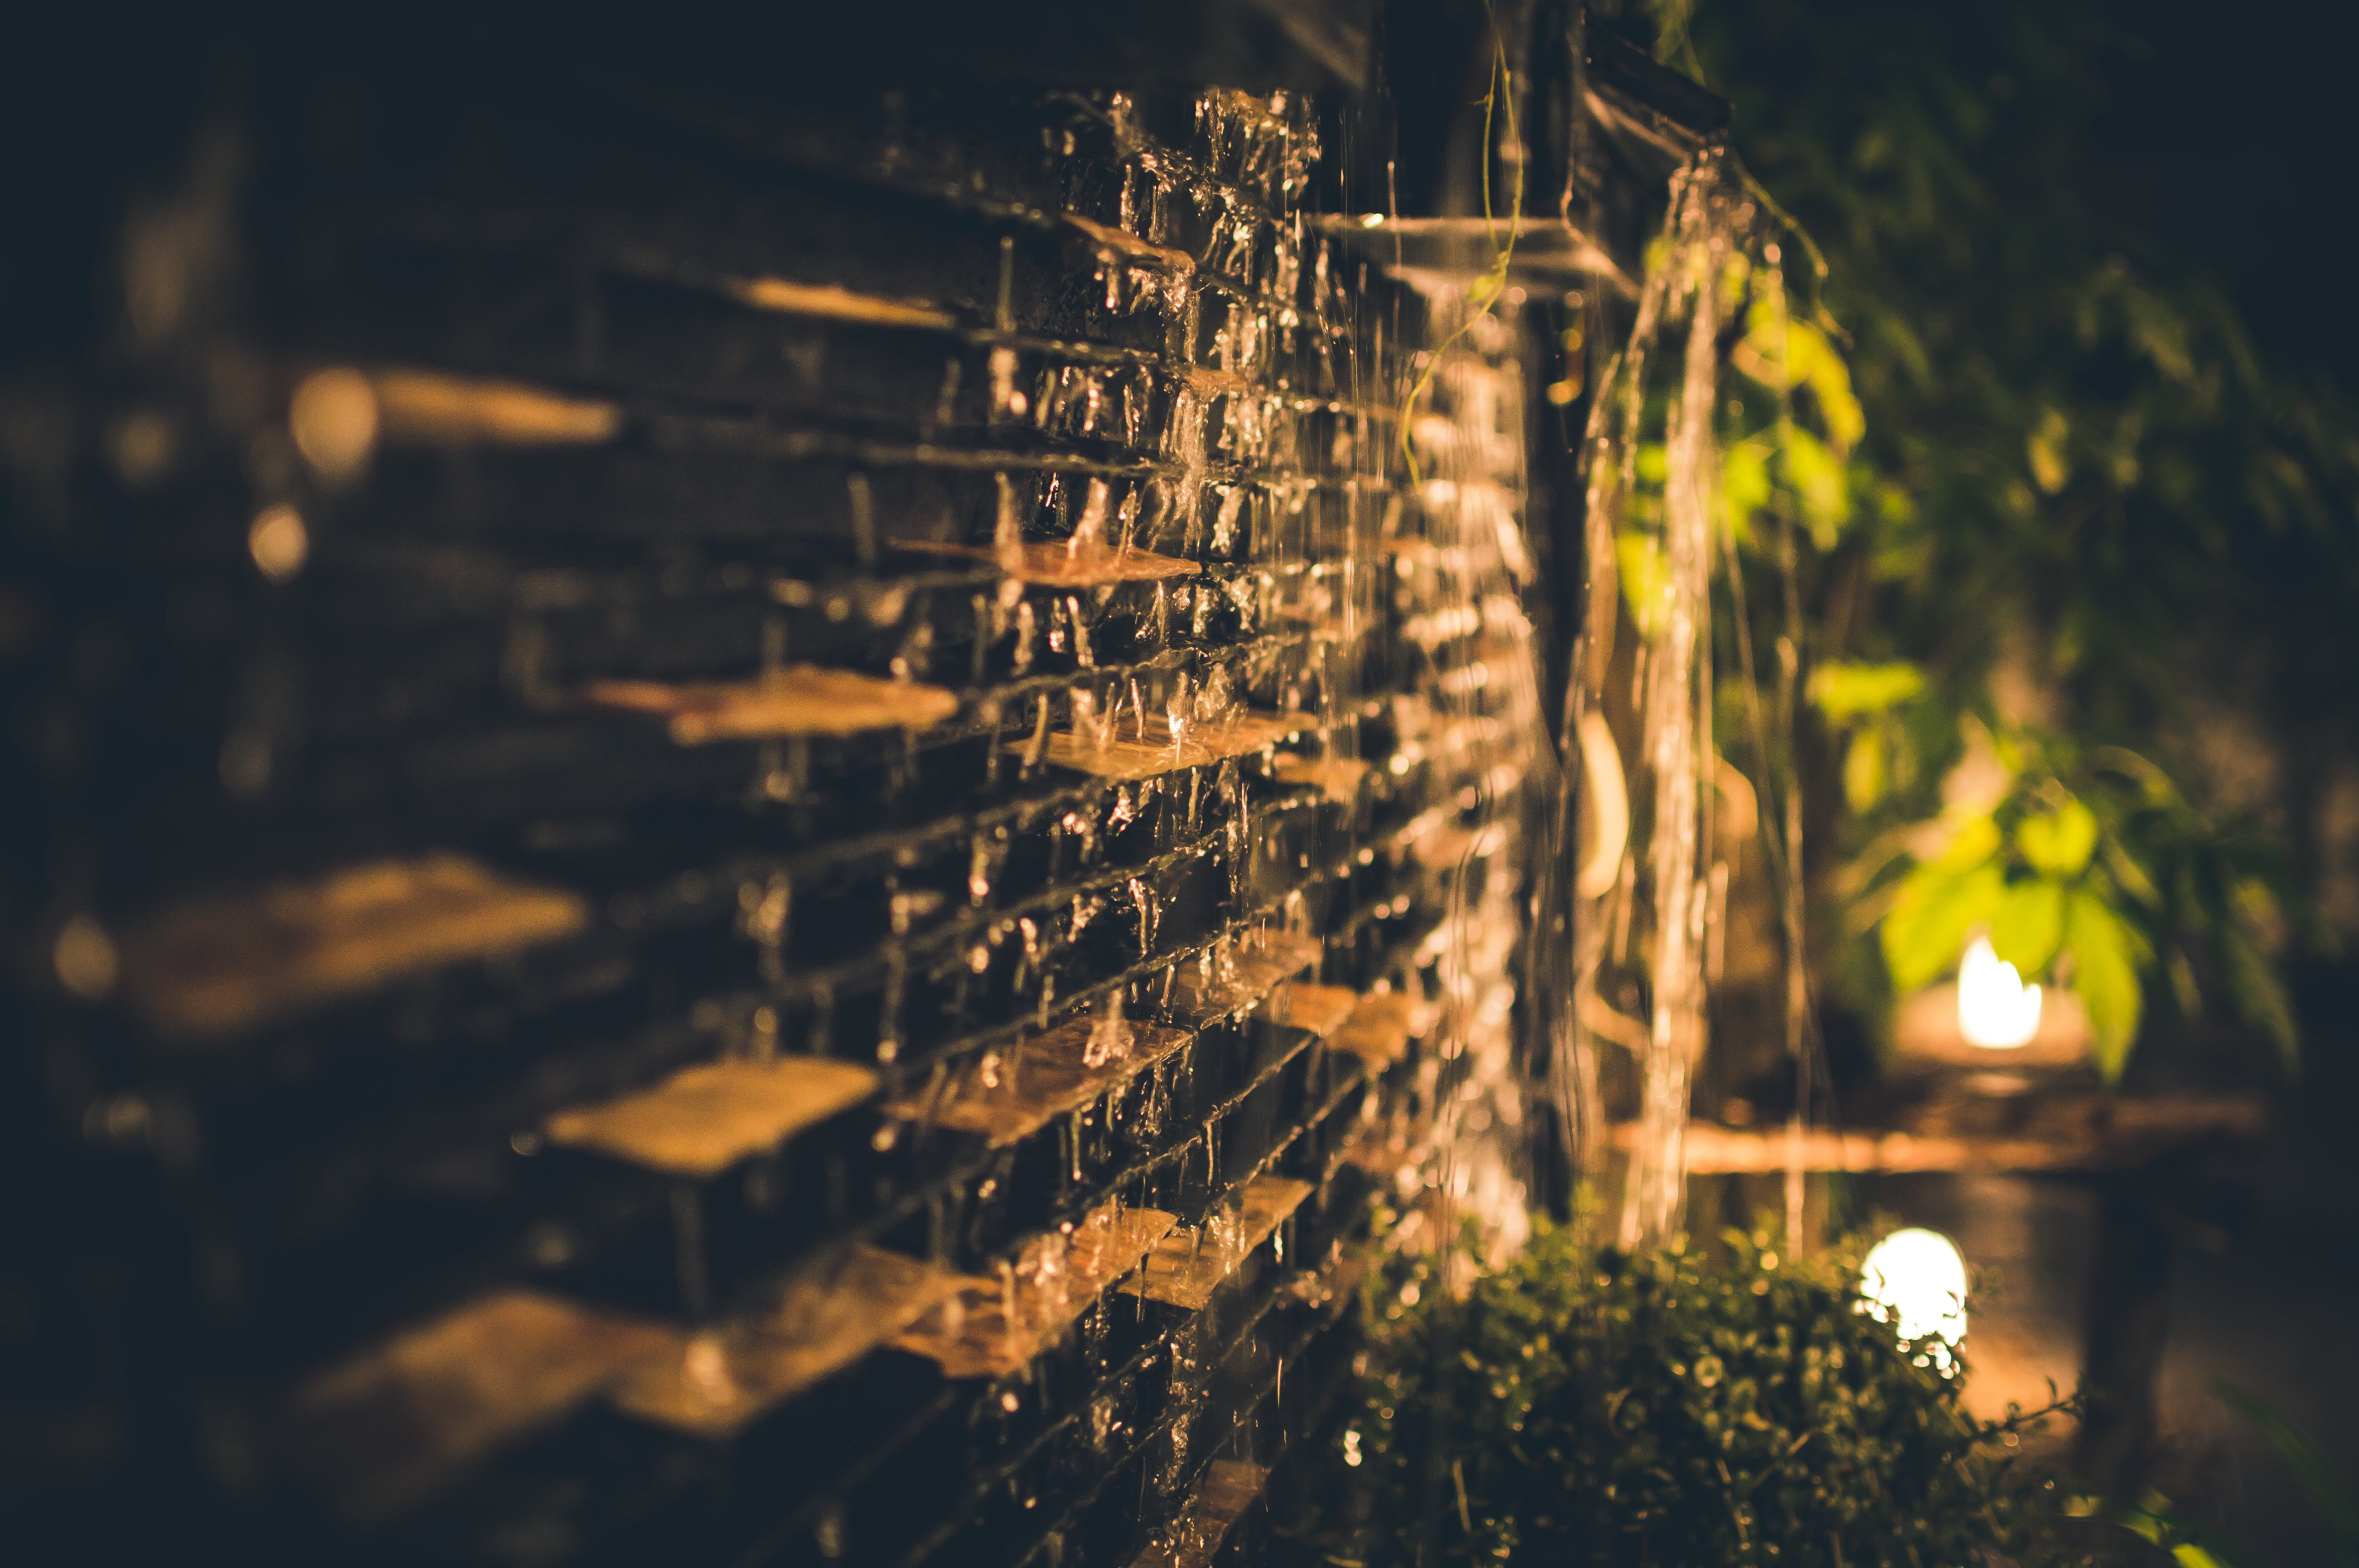 Selective Focus Photography of Brown Brick Wall during Nighttime